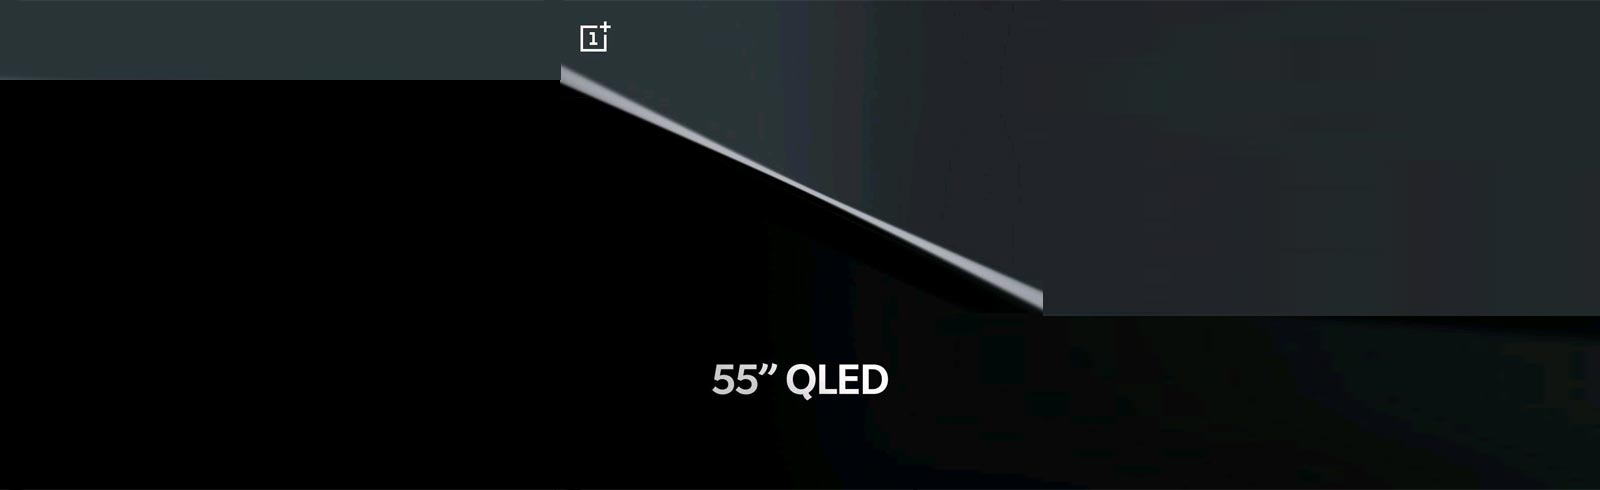 OnePlus TV will have a stand with carbon fiber finish and swivel adjustment